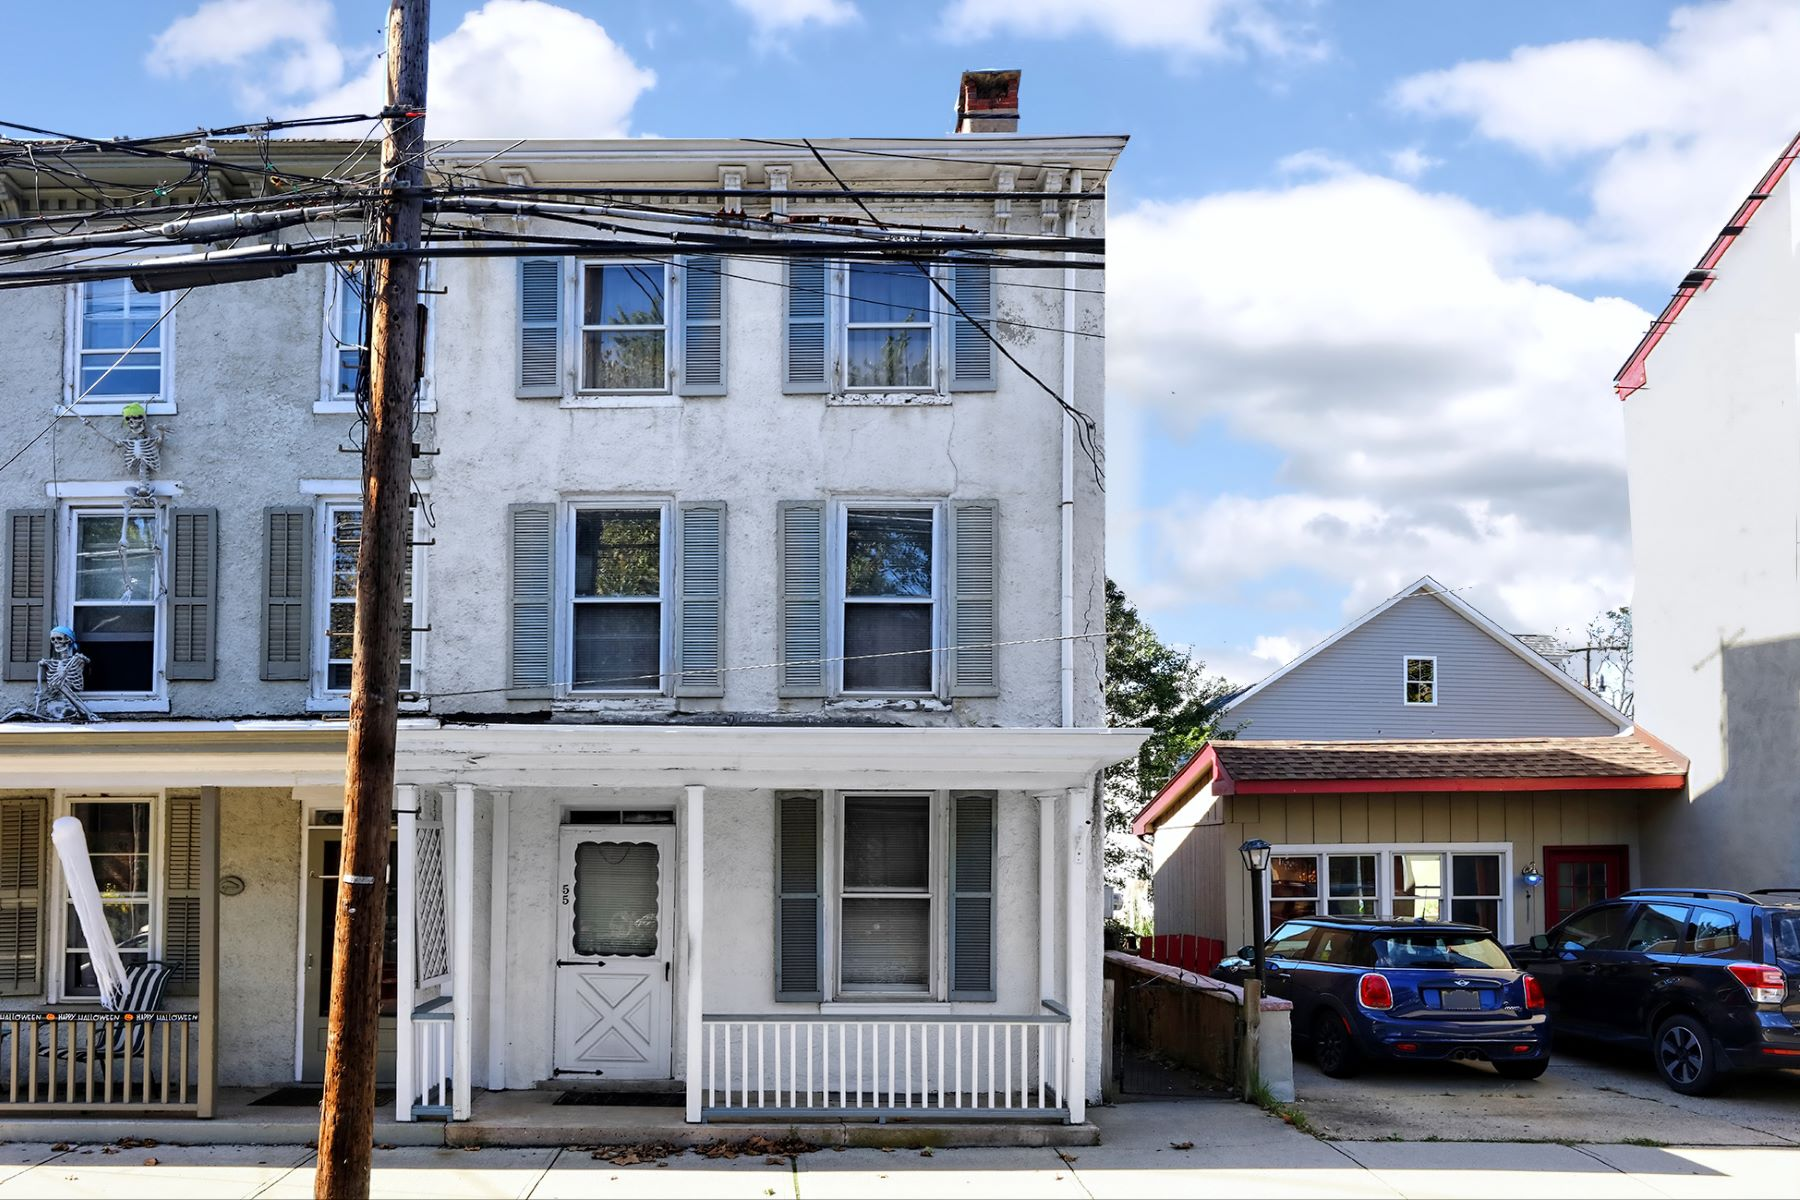 townhouses for Sale at Good Bones, Great Potential 55 South Main Street, Lambertville, New Jersey 08530 United States